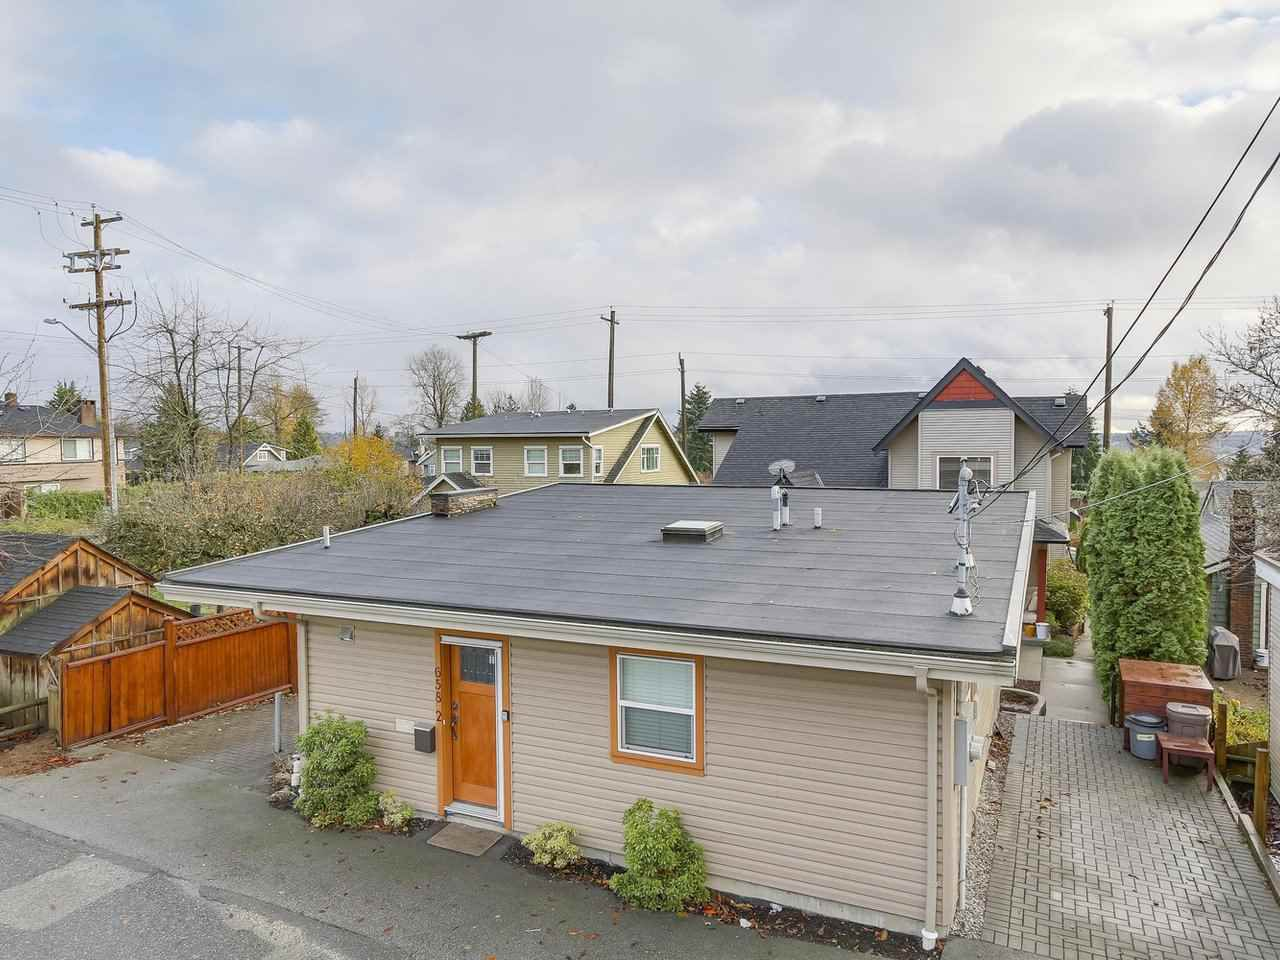 Photo 19: Photos: 658 E 4TH STREET in North Vancouver: Queensbury House for sale : MLS®# R2222993